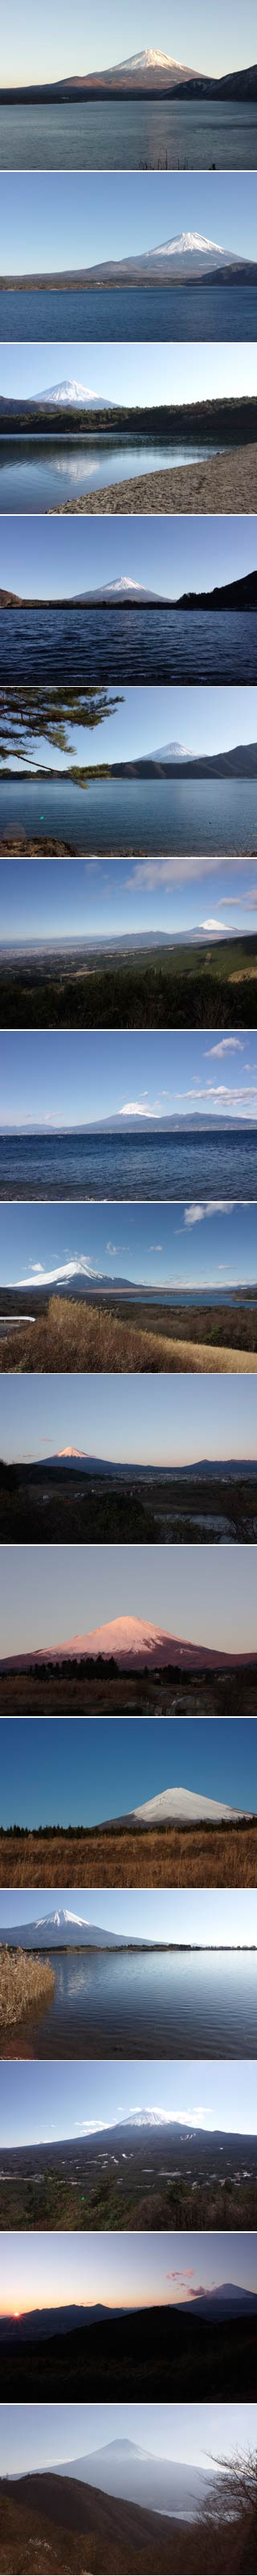 360 degrees view of Mt. Fuji